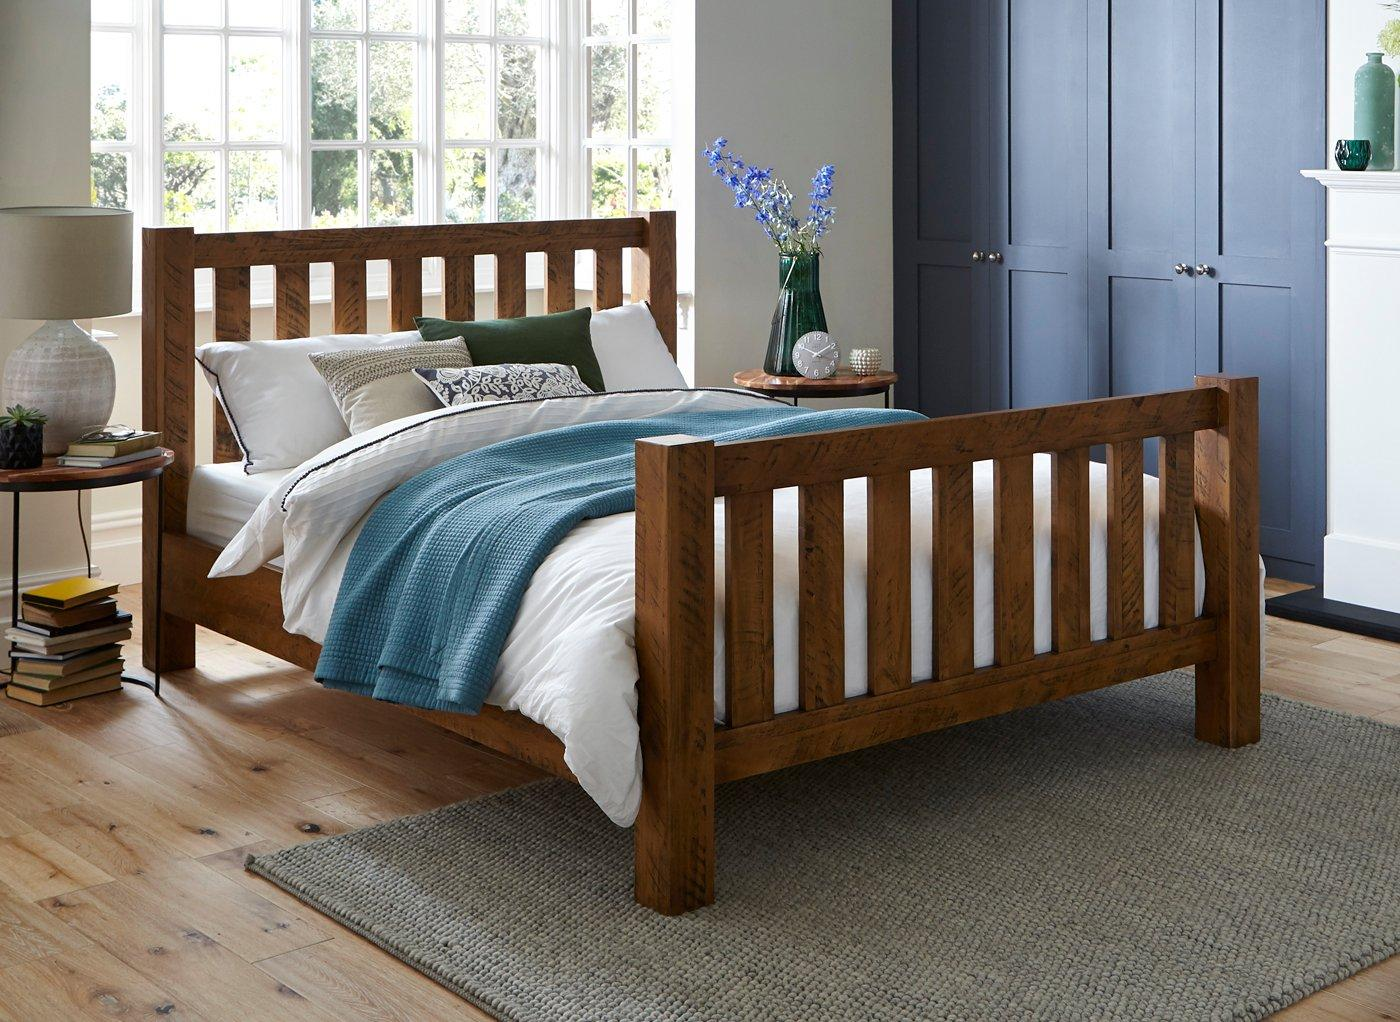 Moore Wooden Bed Frame All Beds Beds Dreams